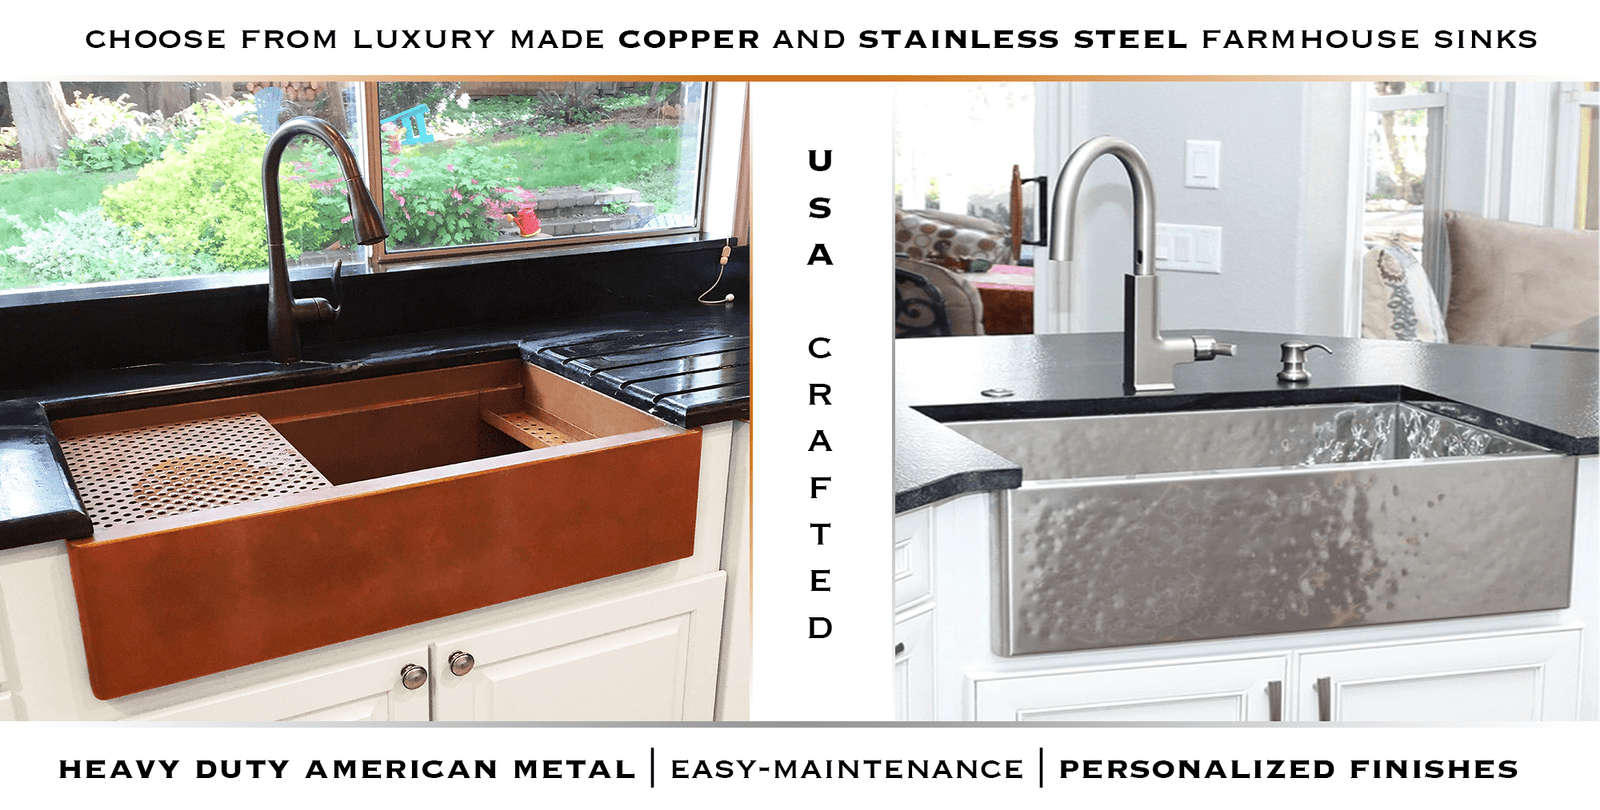 Copper U0026 Stainless Steel Farmhouse Sinks Handcrafted In The USA ...